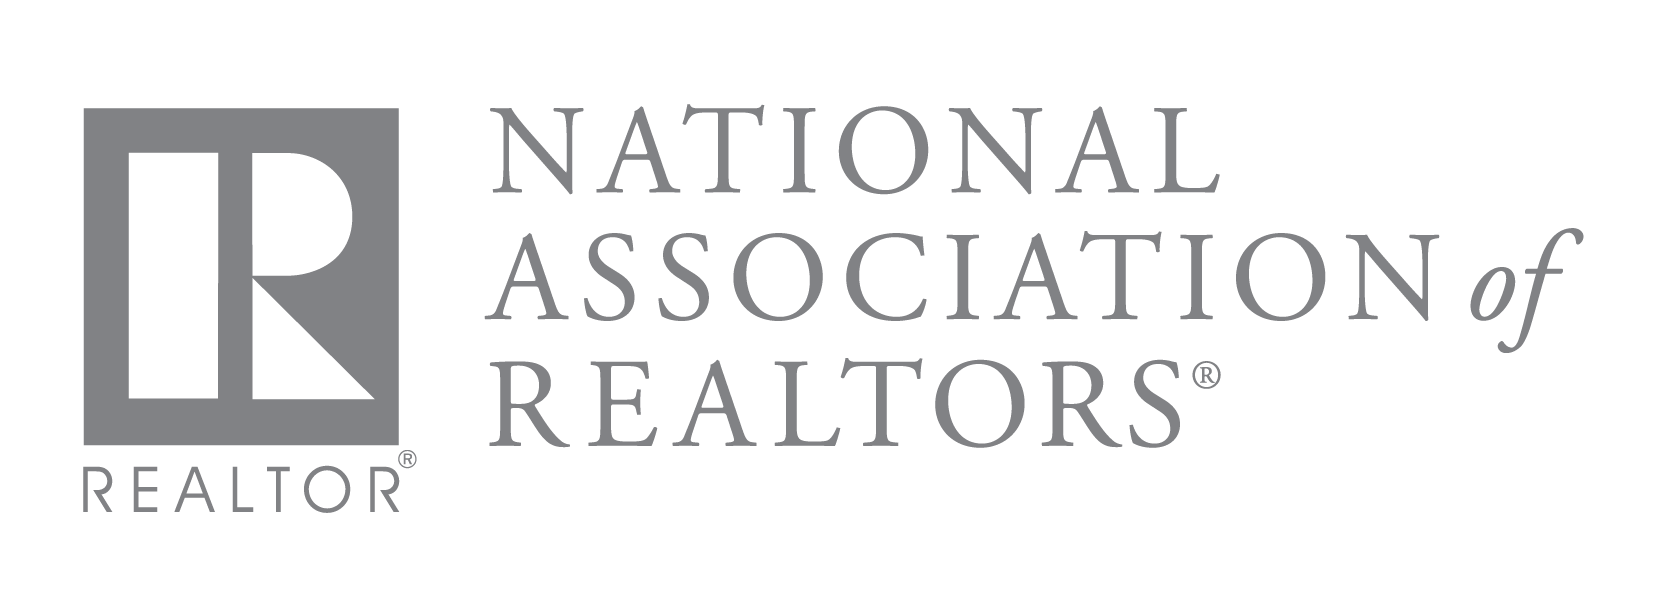 Jose-Garcia-Real-Estate-National-Association-of-Realtors